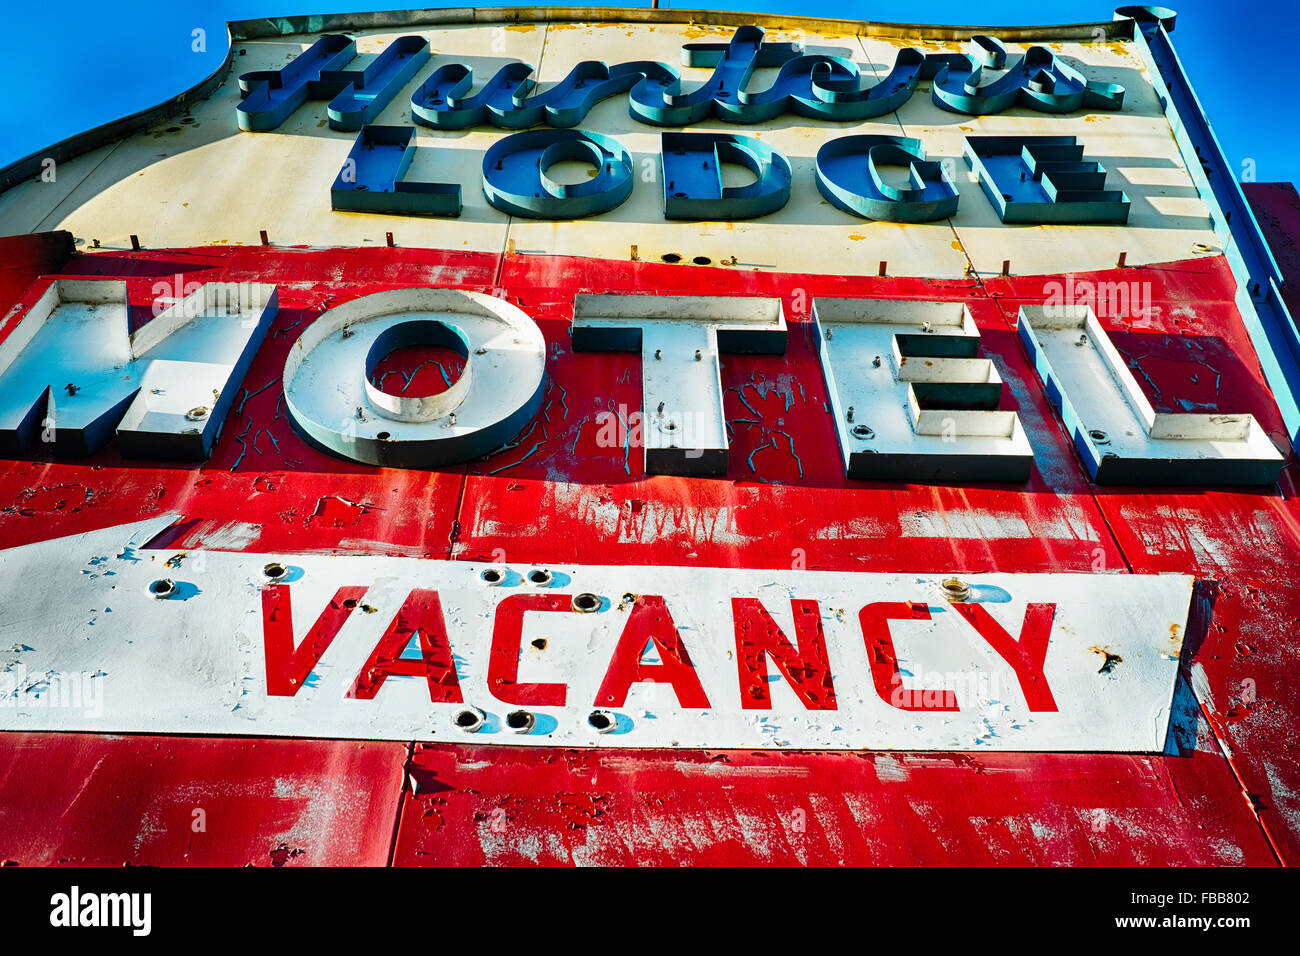 Low Angle View of an Old Dilapidated Neon Sign of a Motel, Rt 46, Columbia, Warren County, New Jersey - Stock Image